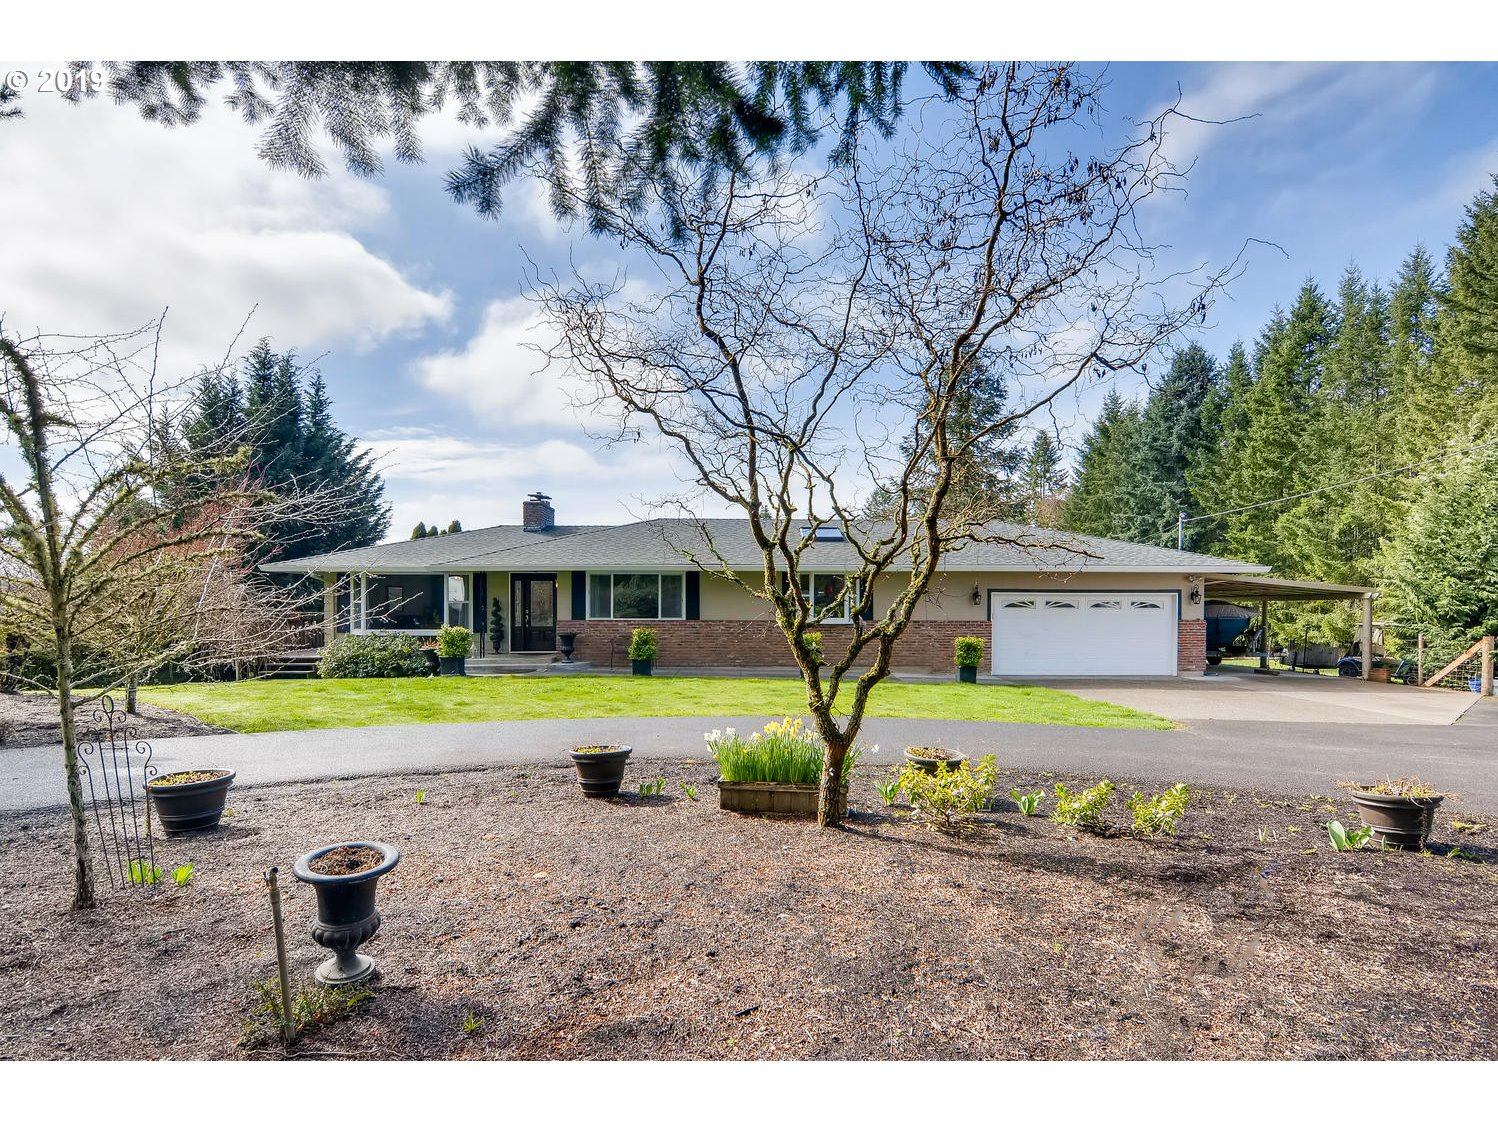 Photo of 15455 SW HILLSBORO HWY Hillsboro OR 97123